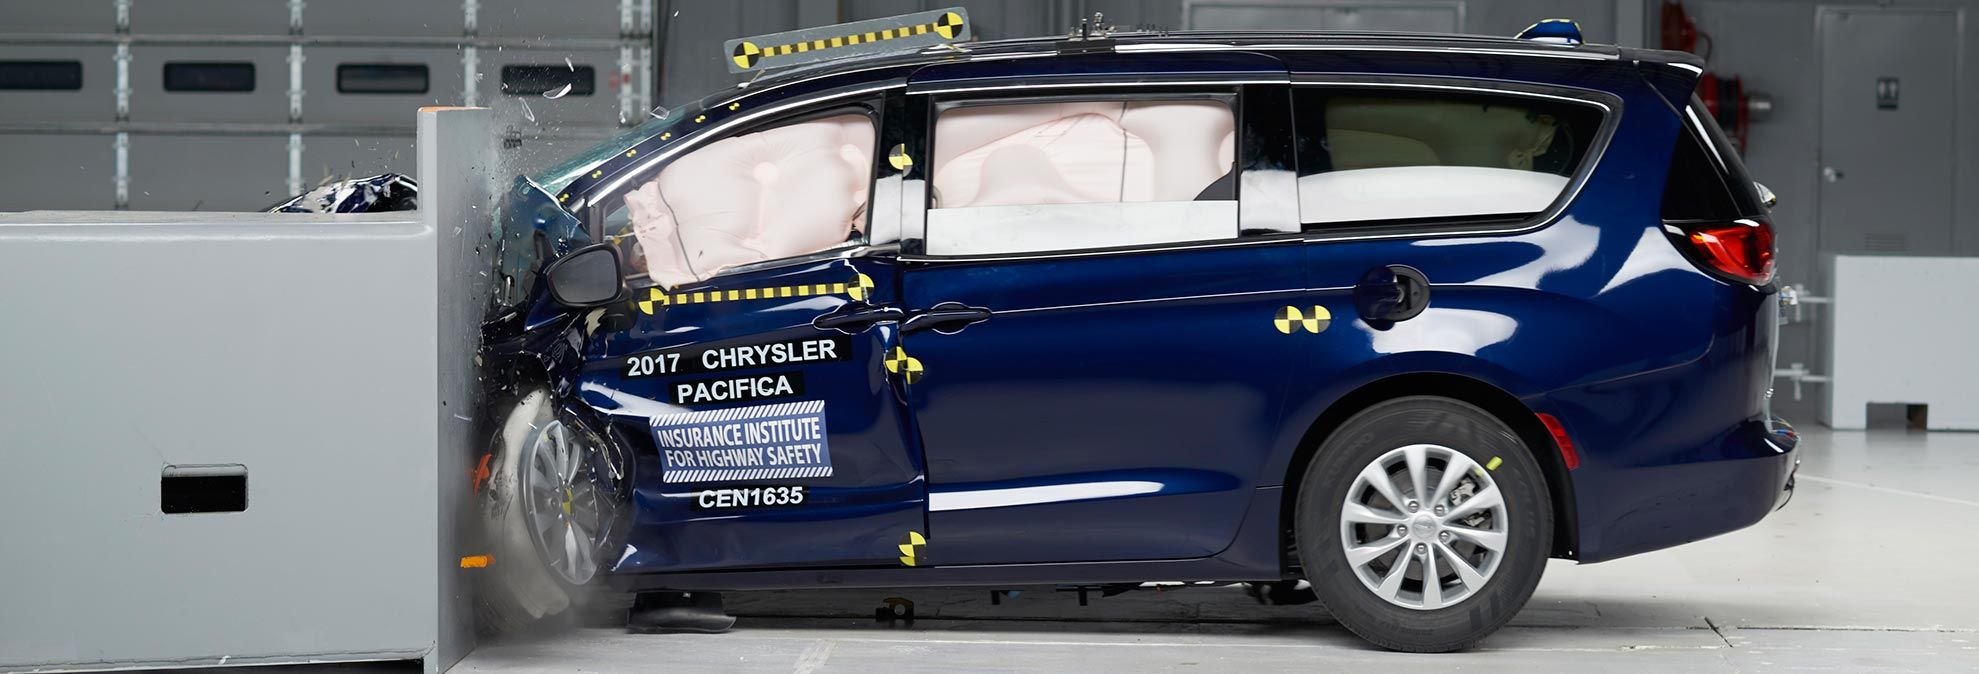 2017 Chrysler Pacifica Earns Iihs Top Safety Pick Rating But